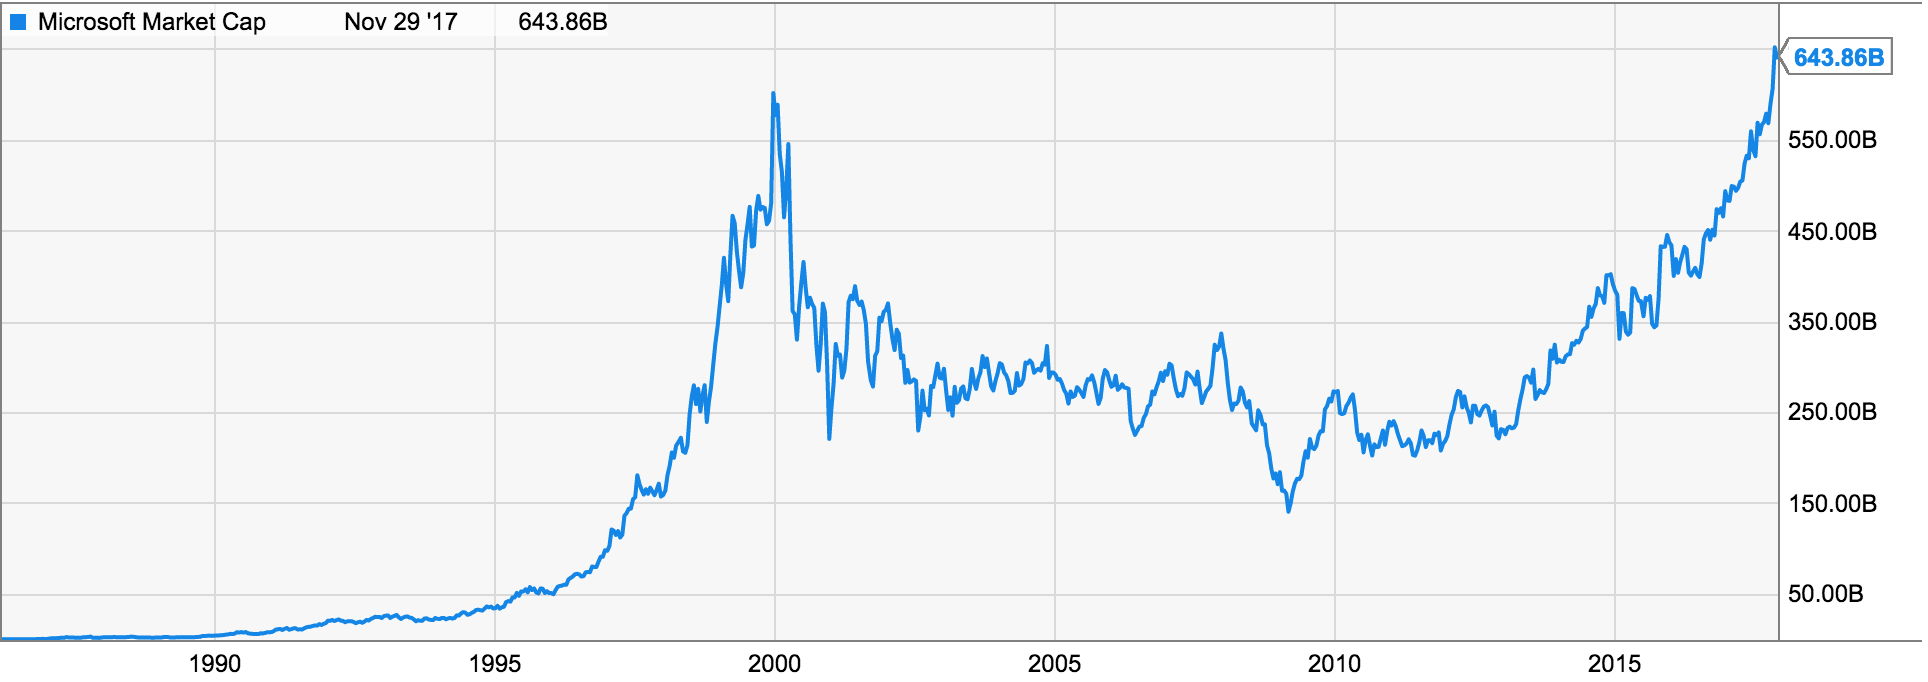 CISCO Was Priced At 79 Share The Peak Of Tech Bubble After Crashing To 11 In 2002 Its Now Worth 32 Less Than Half What It